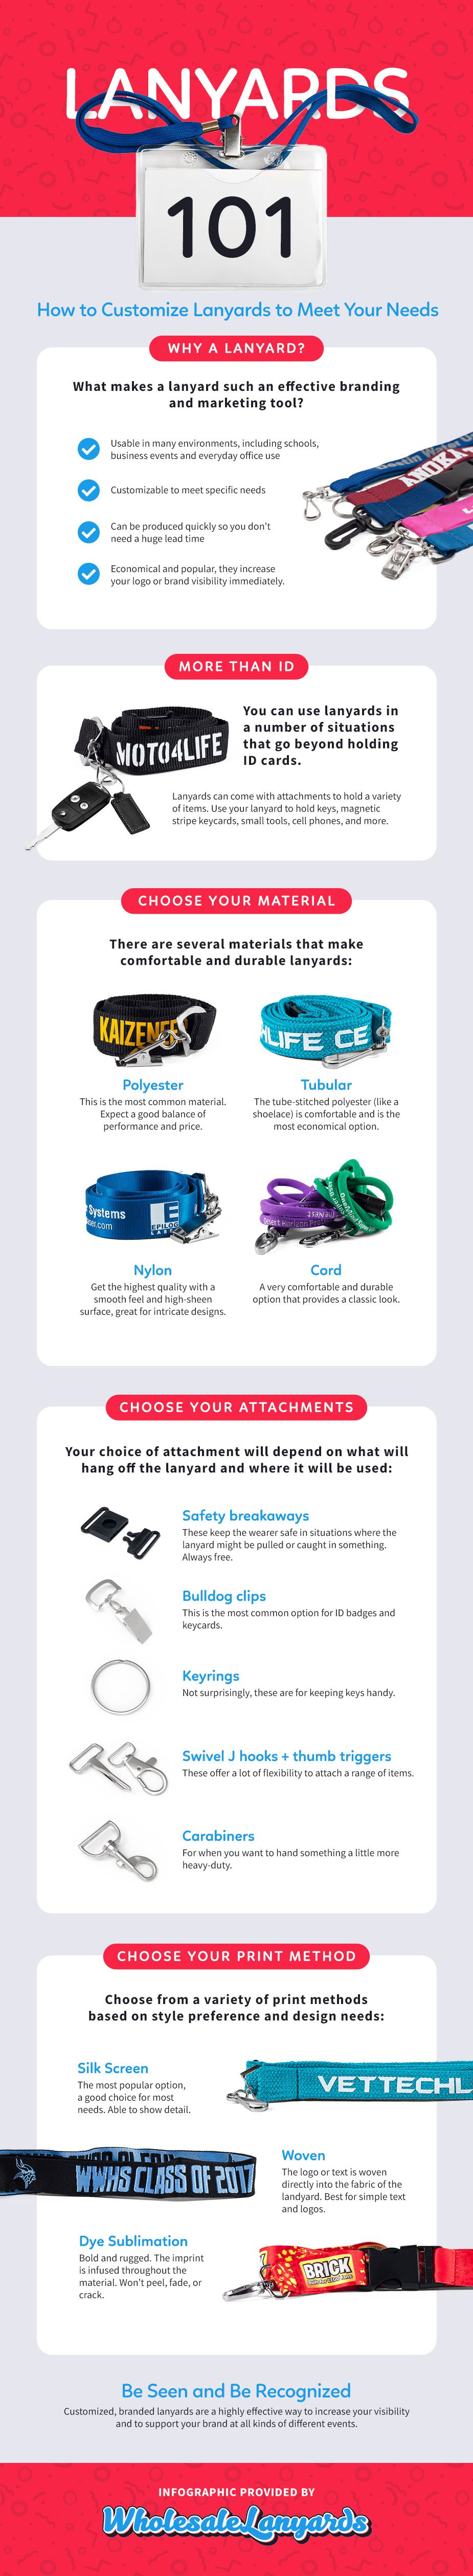 Lanyards 101: How to Customize Lanyards to Meet Your Needs